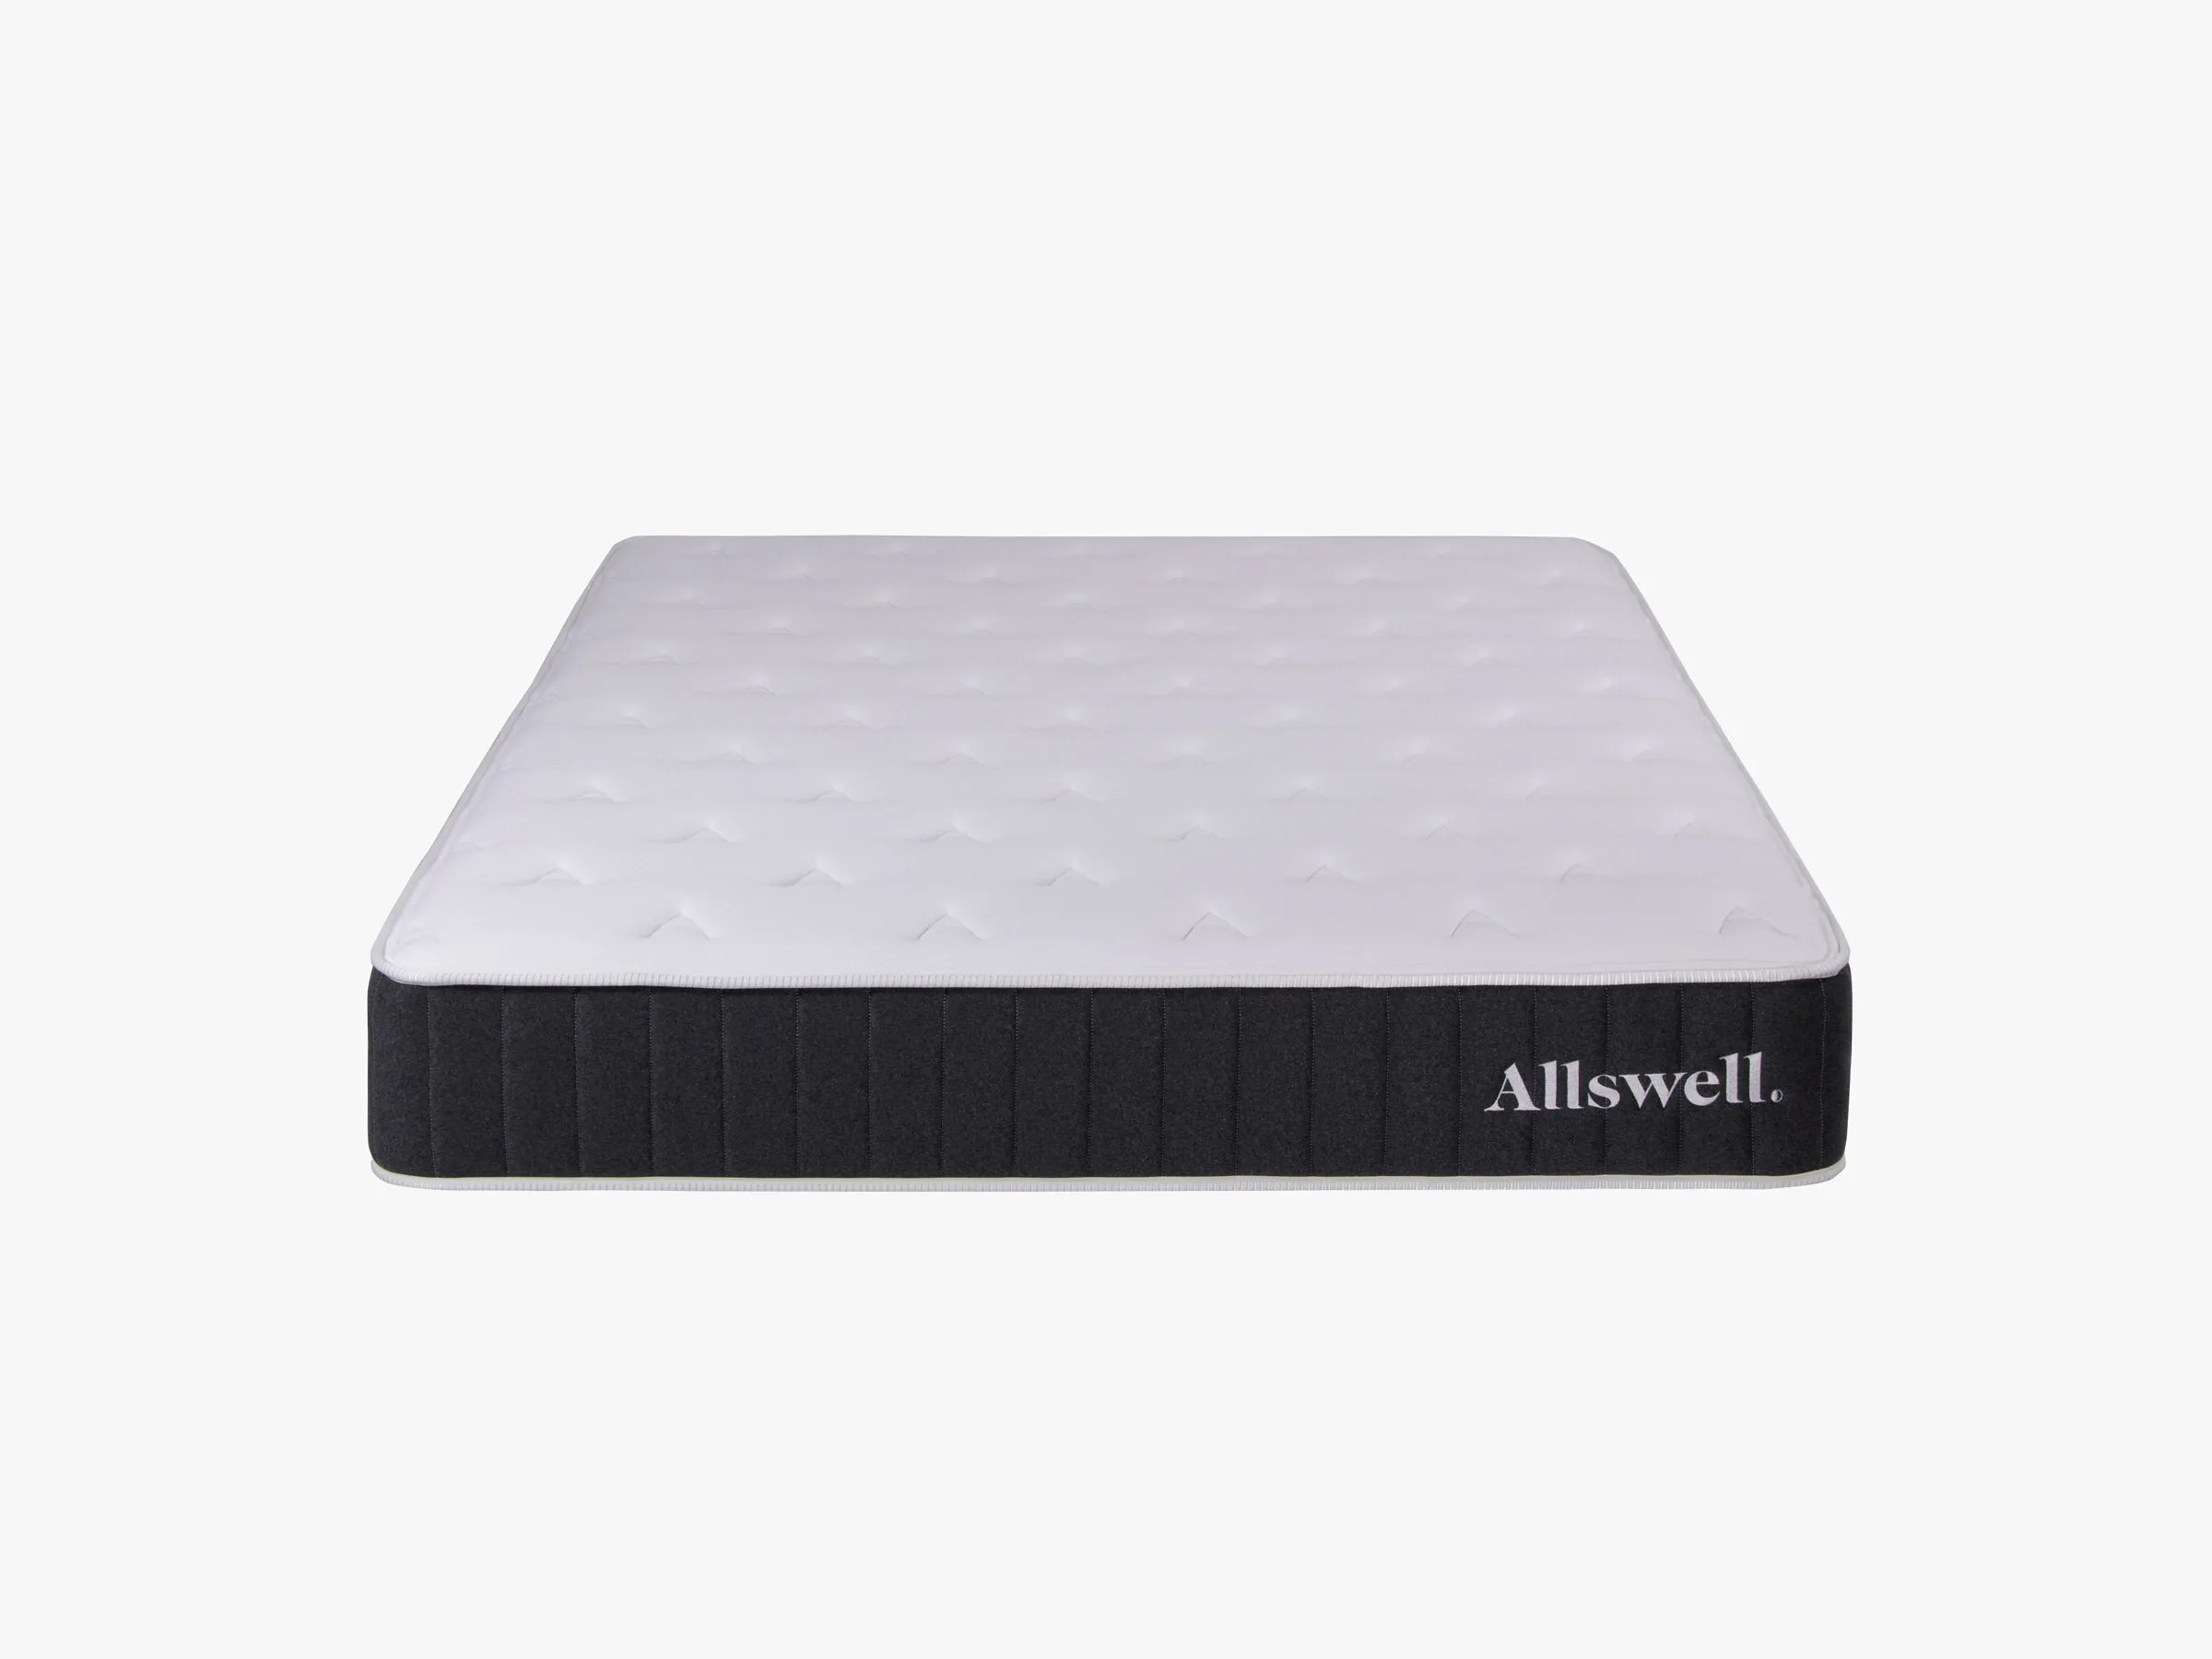 Best Traditional Mattress The Allswell Hybrid 10 Inch